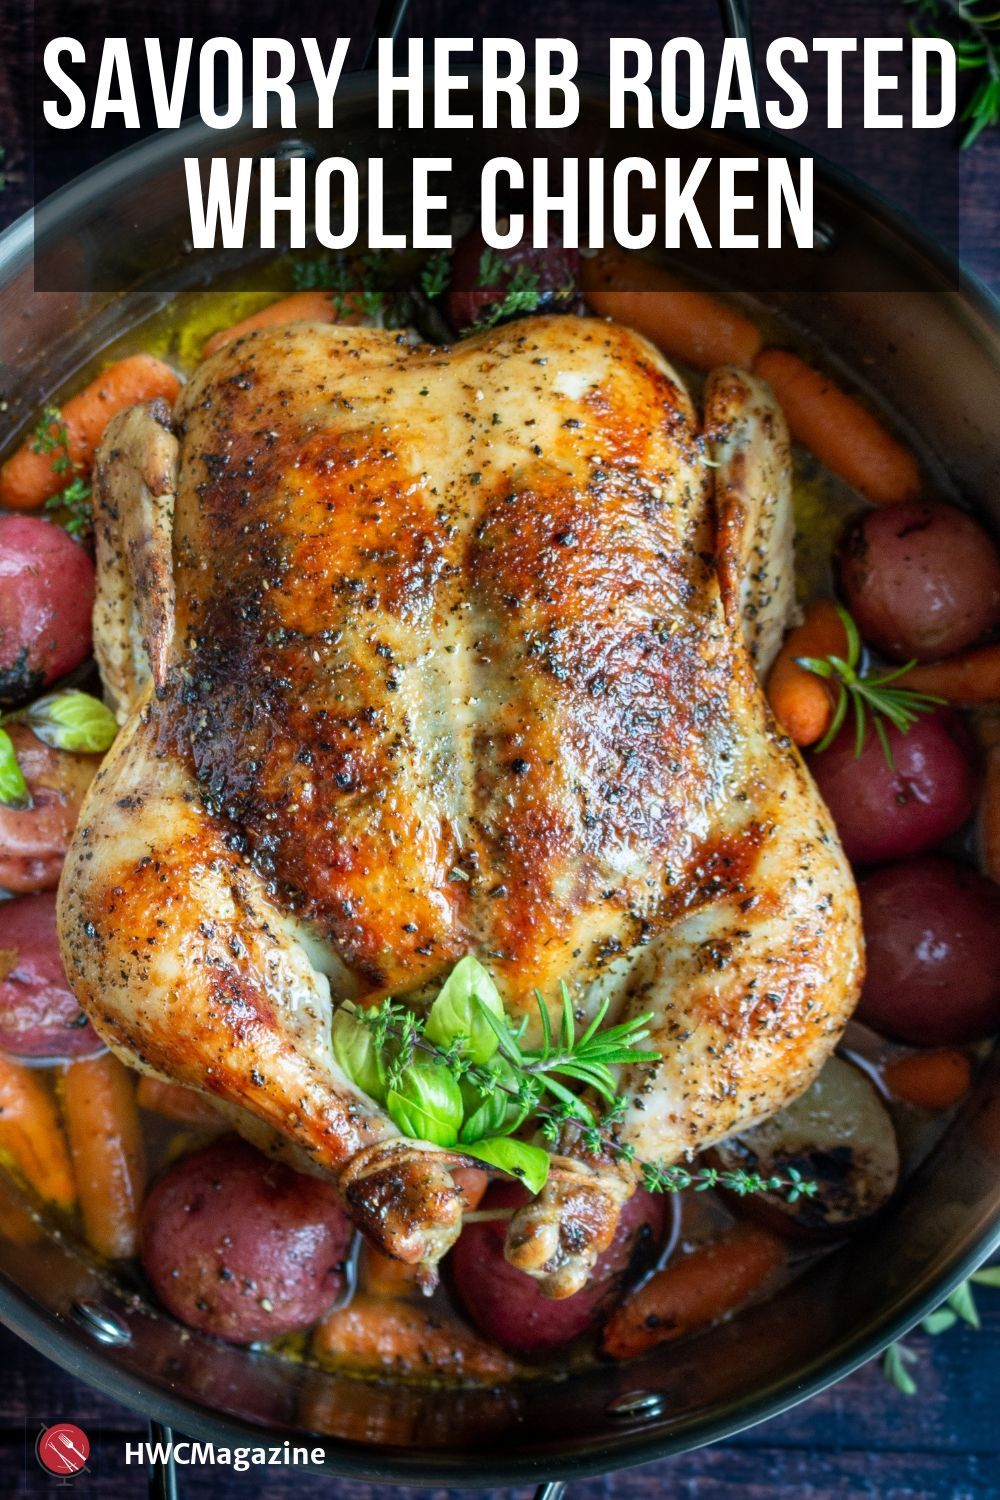 Savory Herb Roasted Whole Chicken Recipe Savory Herb Rotisserie Chicken Recipes Whole Chicken